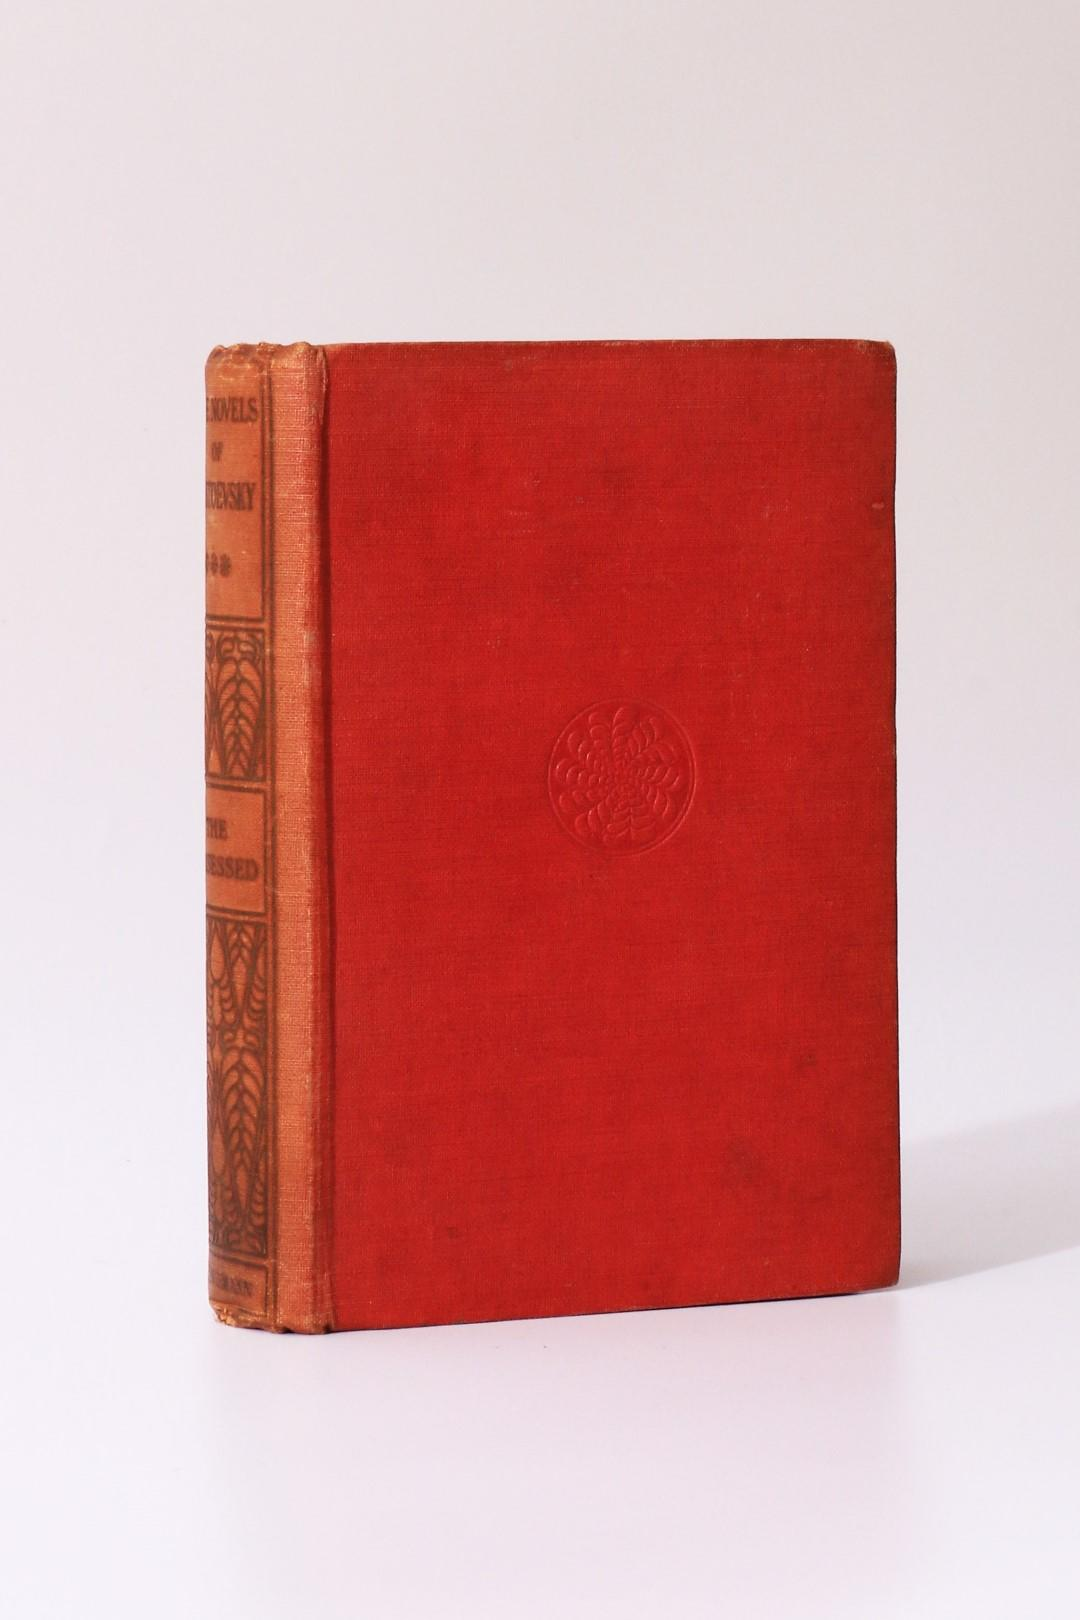 Fyodor Dostoevsky [Dostoyevsky] - The Possessed - Heinemann, 1913, First Edition.